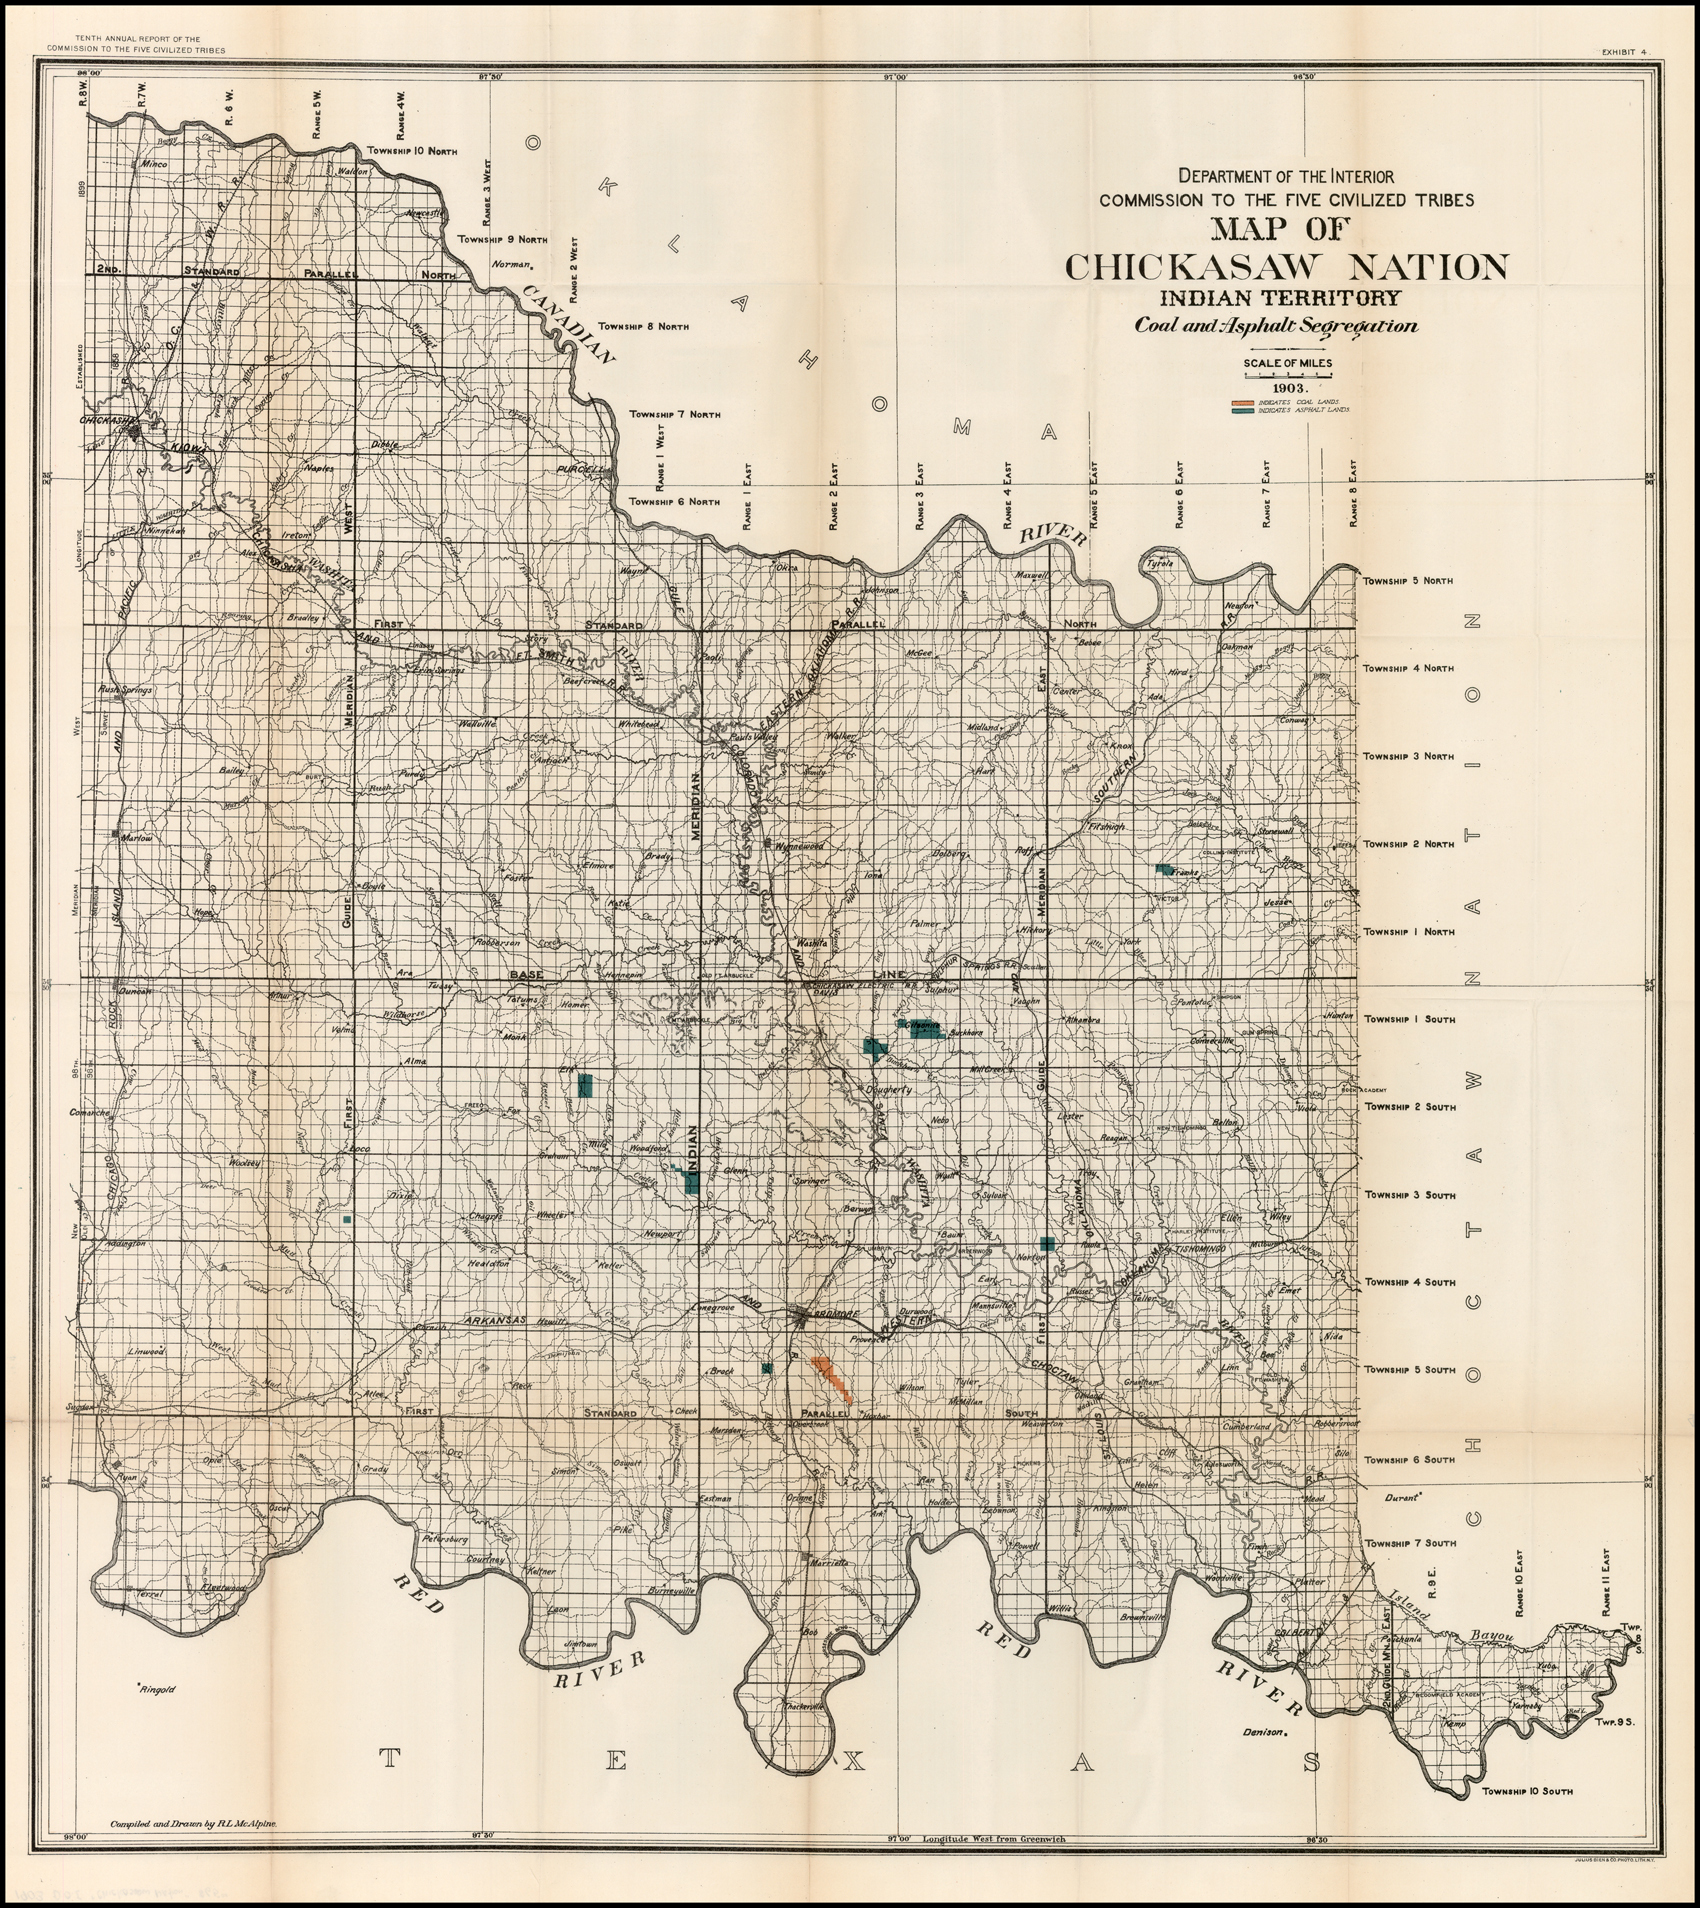 Map Of Chickasaw Nation Indian Territory Coal And